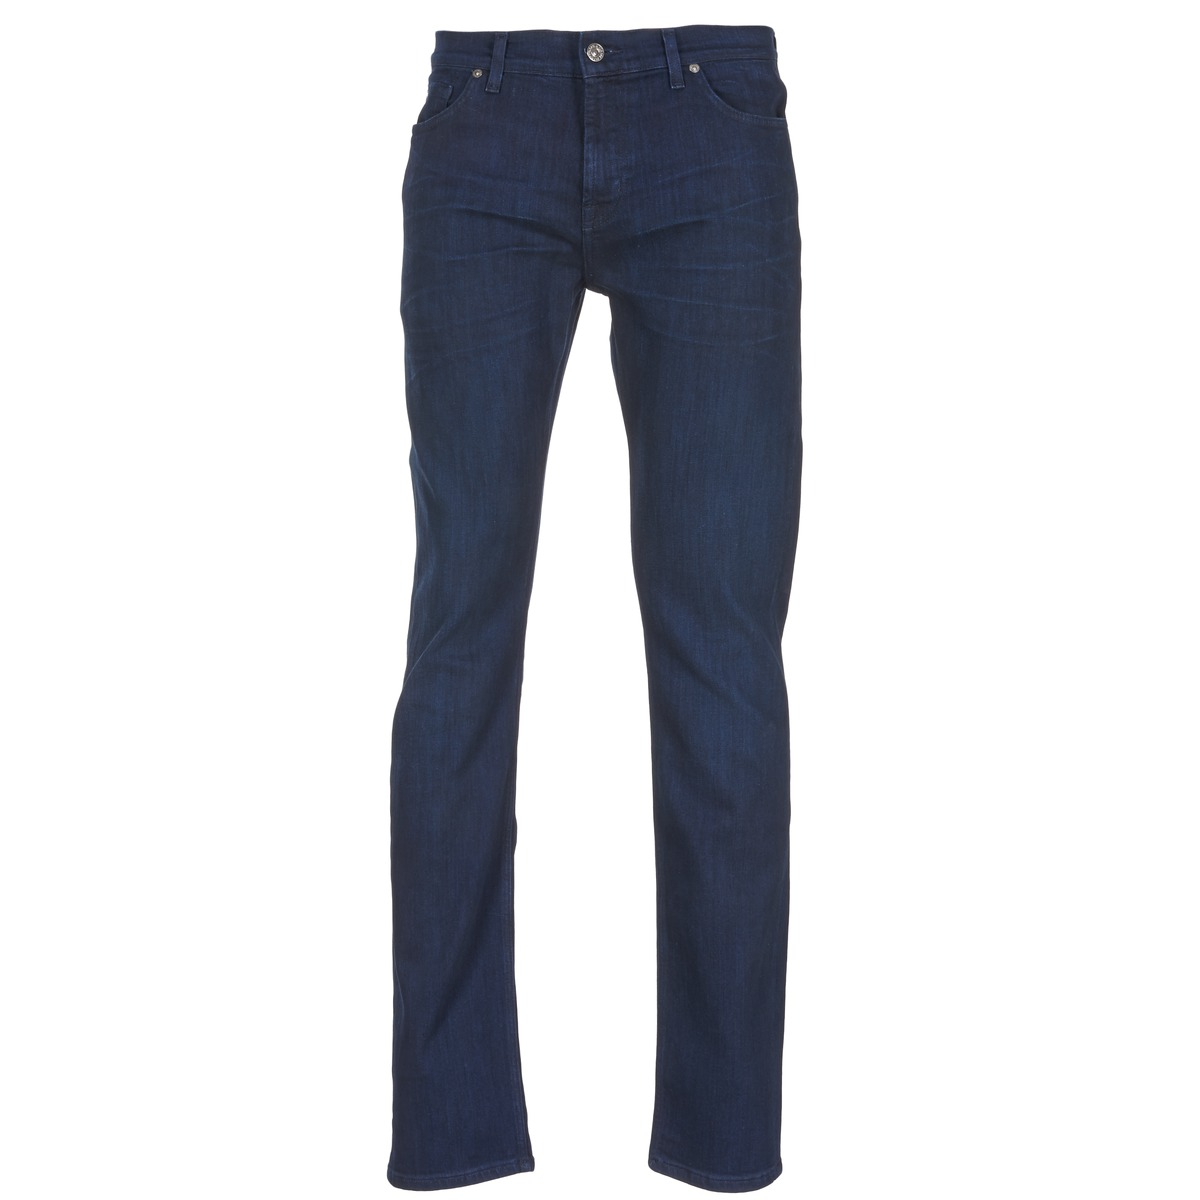 7 for all Mankind RONNIE WINTER INTENSE Blue / Dark